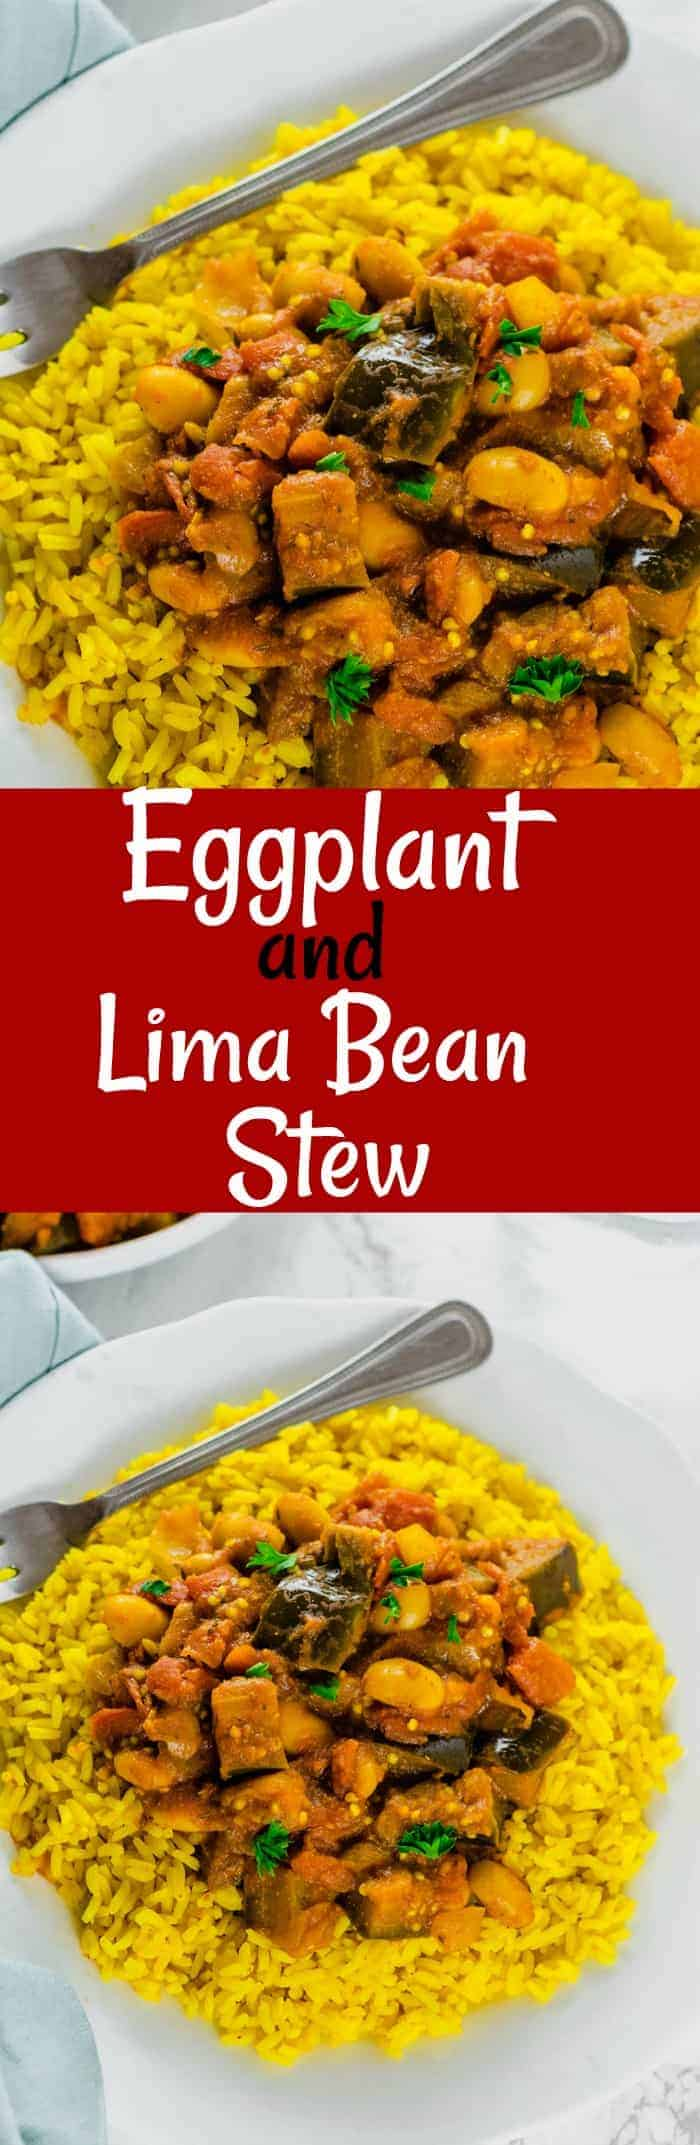 Eggplant And Lima Bean Stew Pin